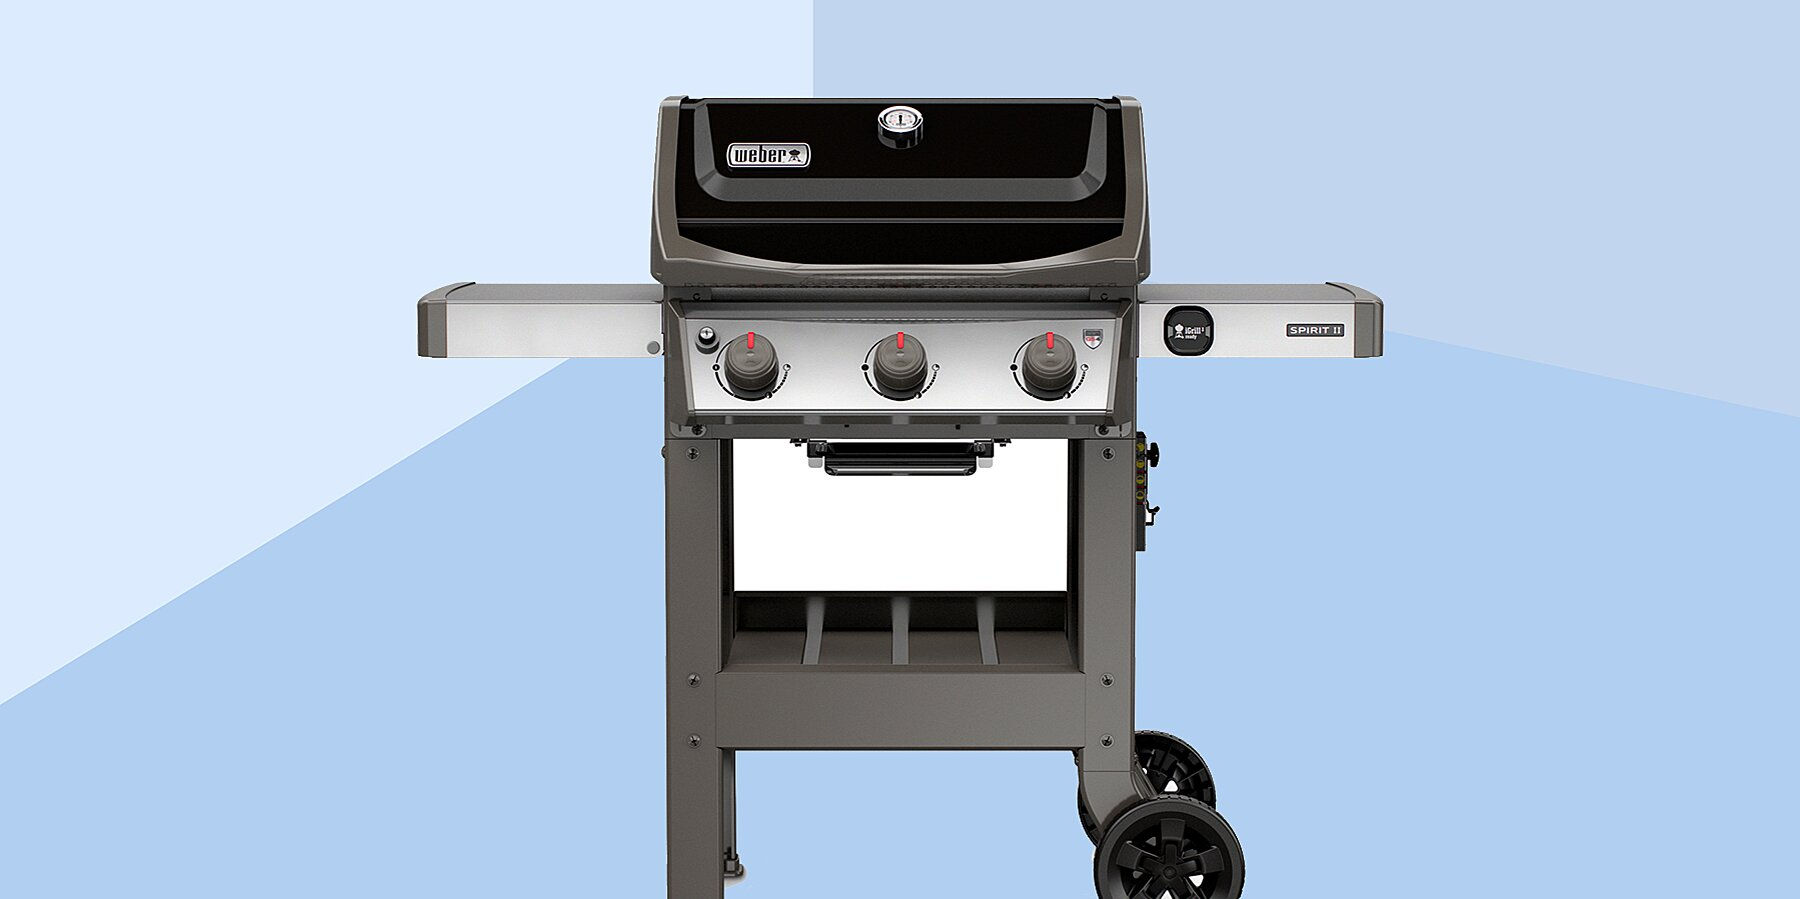 9 Best Grills For 2019 According To Reviews Real Simple